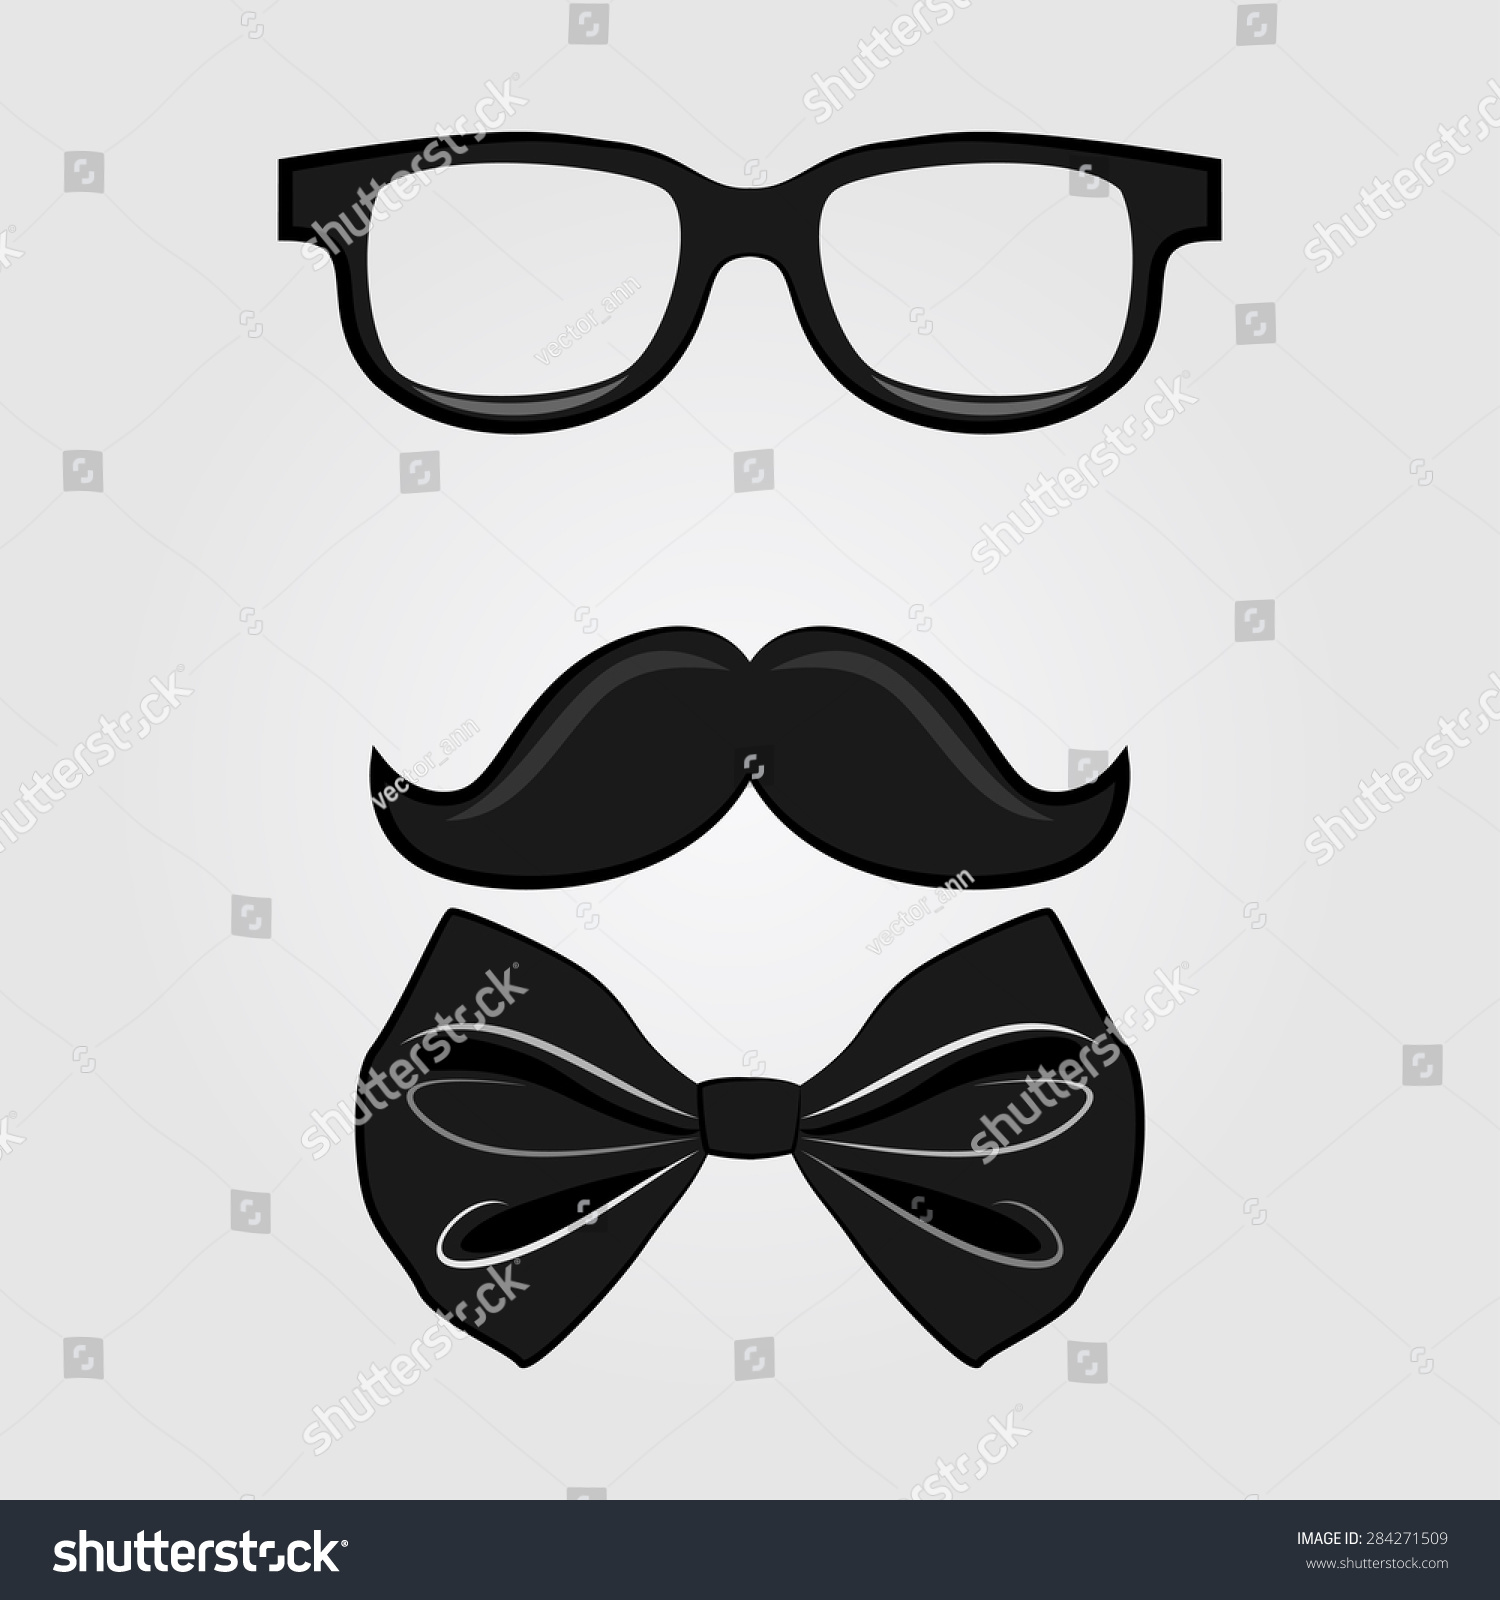 Royalty Free Stock Illustration Of Retro Symbolic Illustration Man